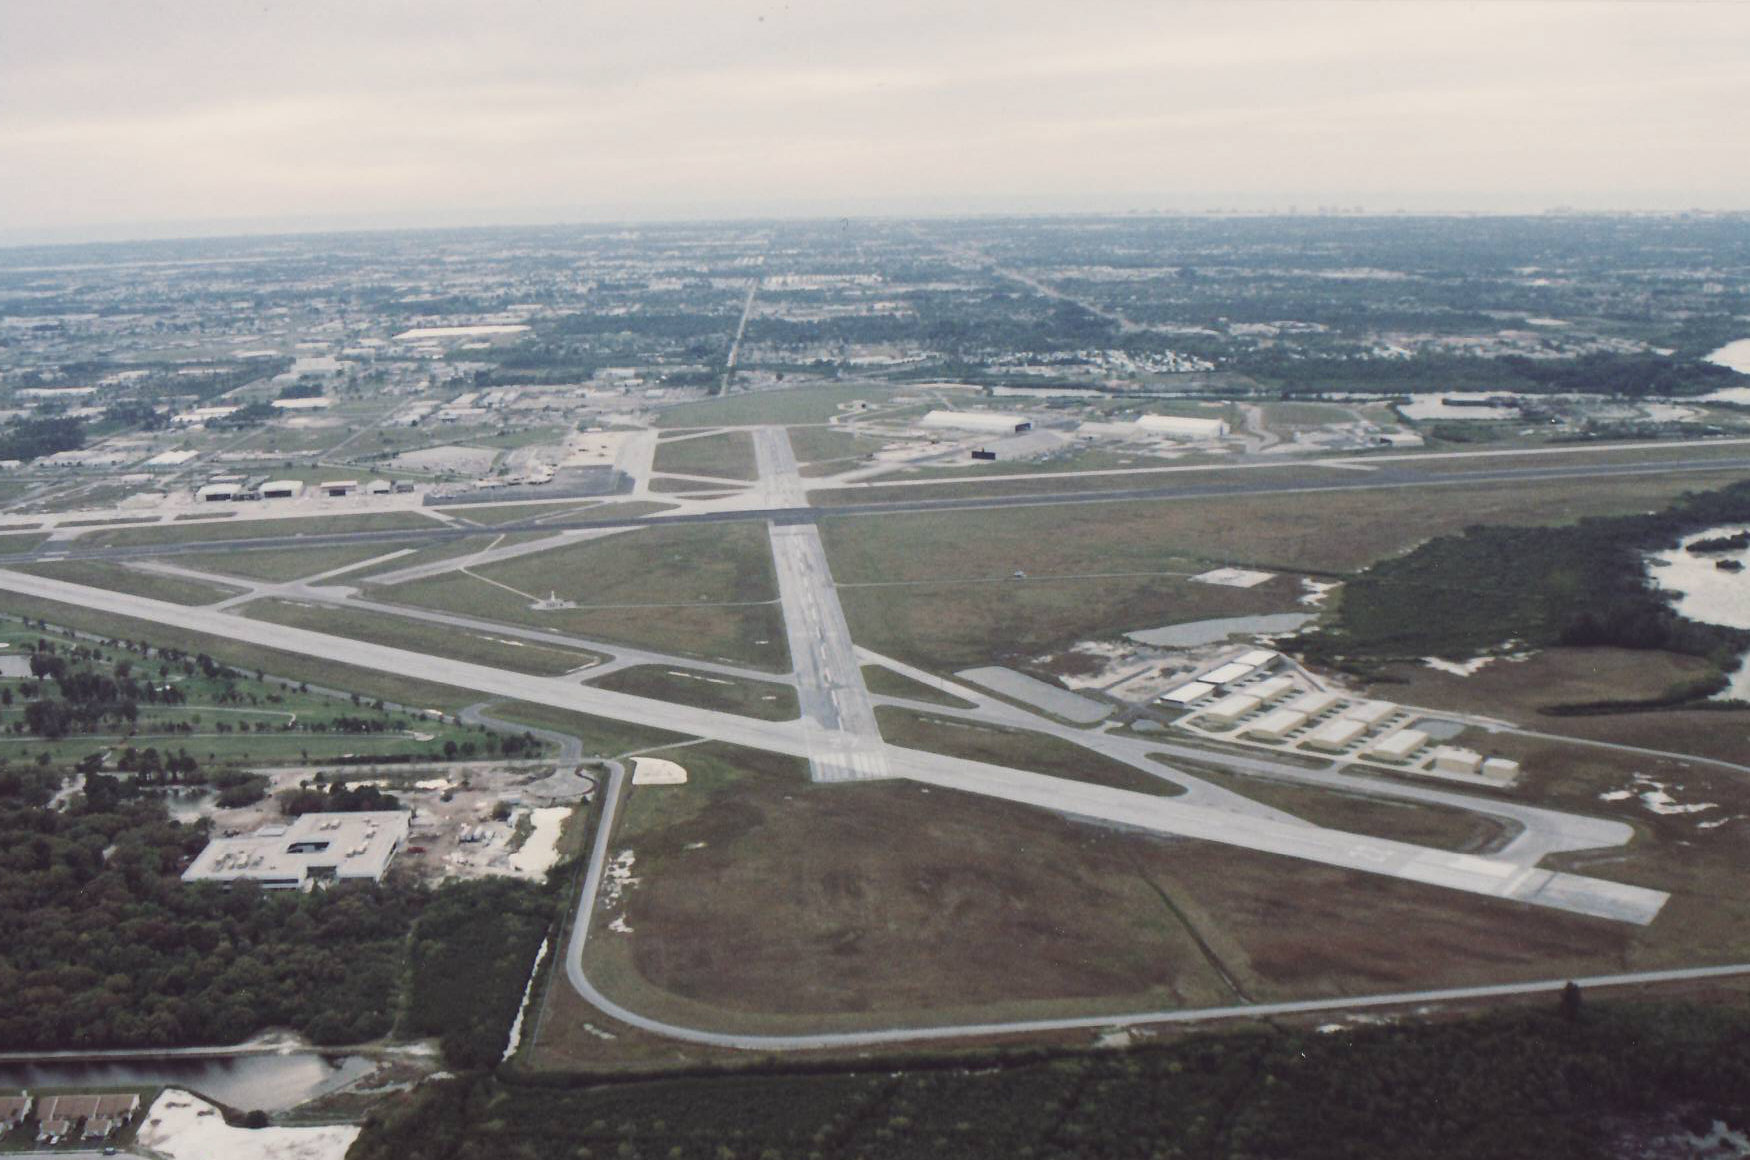 List of airports in the Tampa Bay Area - Wikipedia